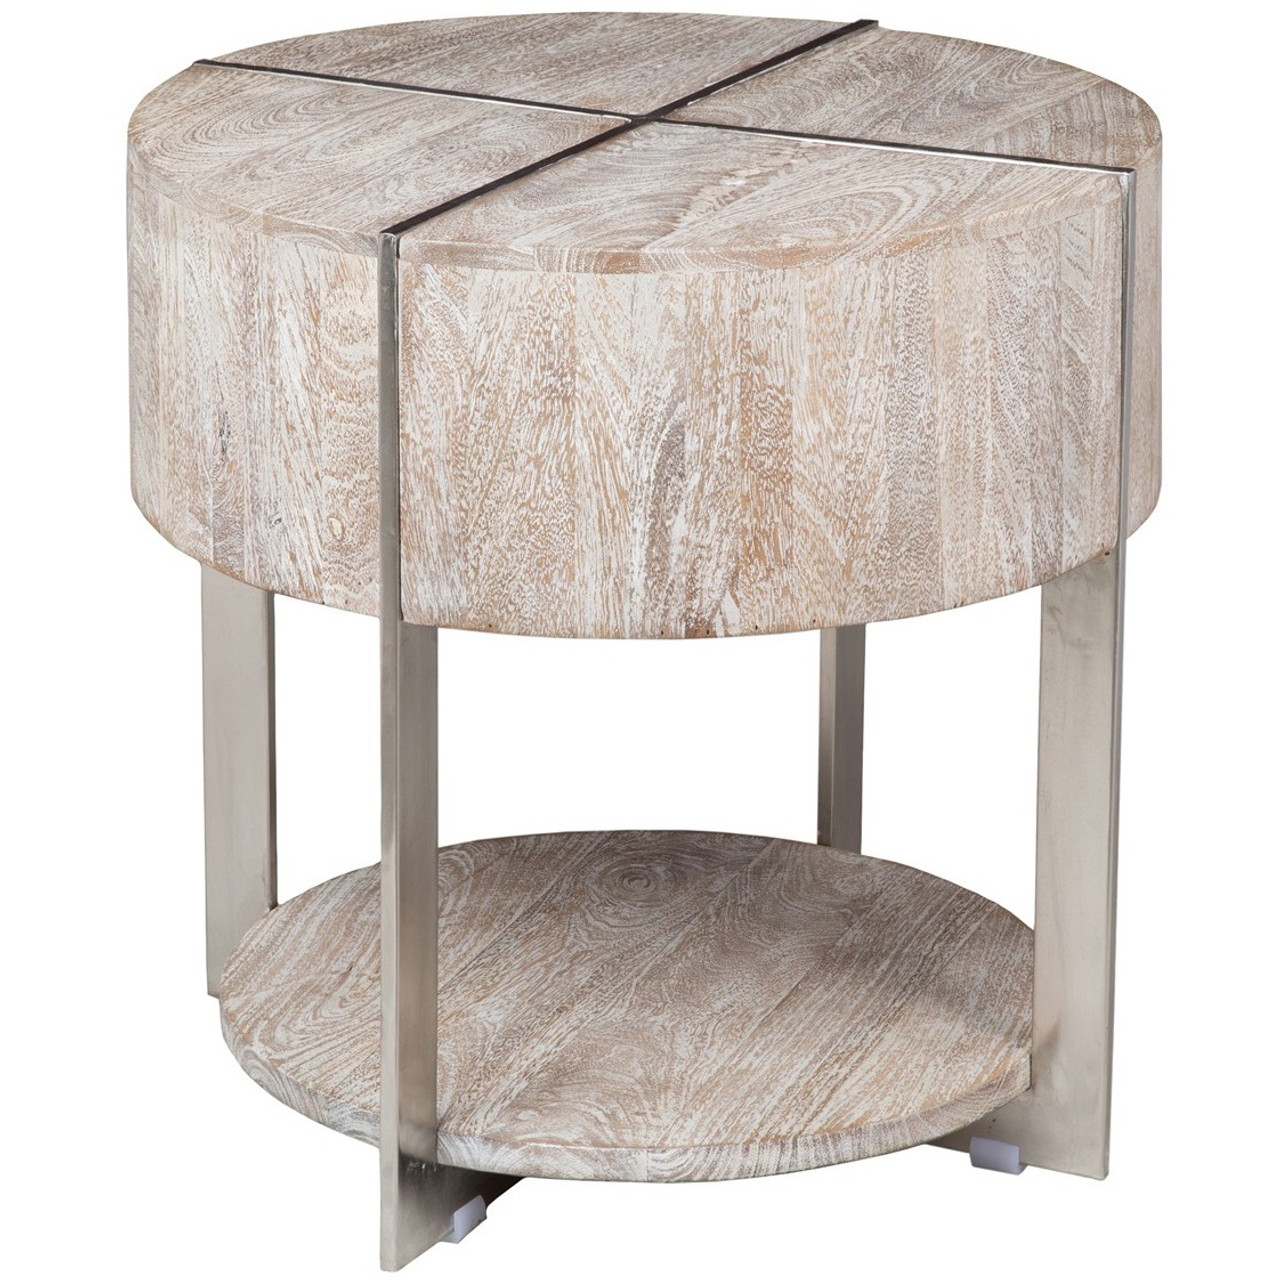 98b4ce39a1 Uptown Whitewashed Solid Wood Round End Table with shelf | Zin Home